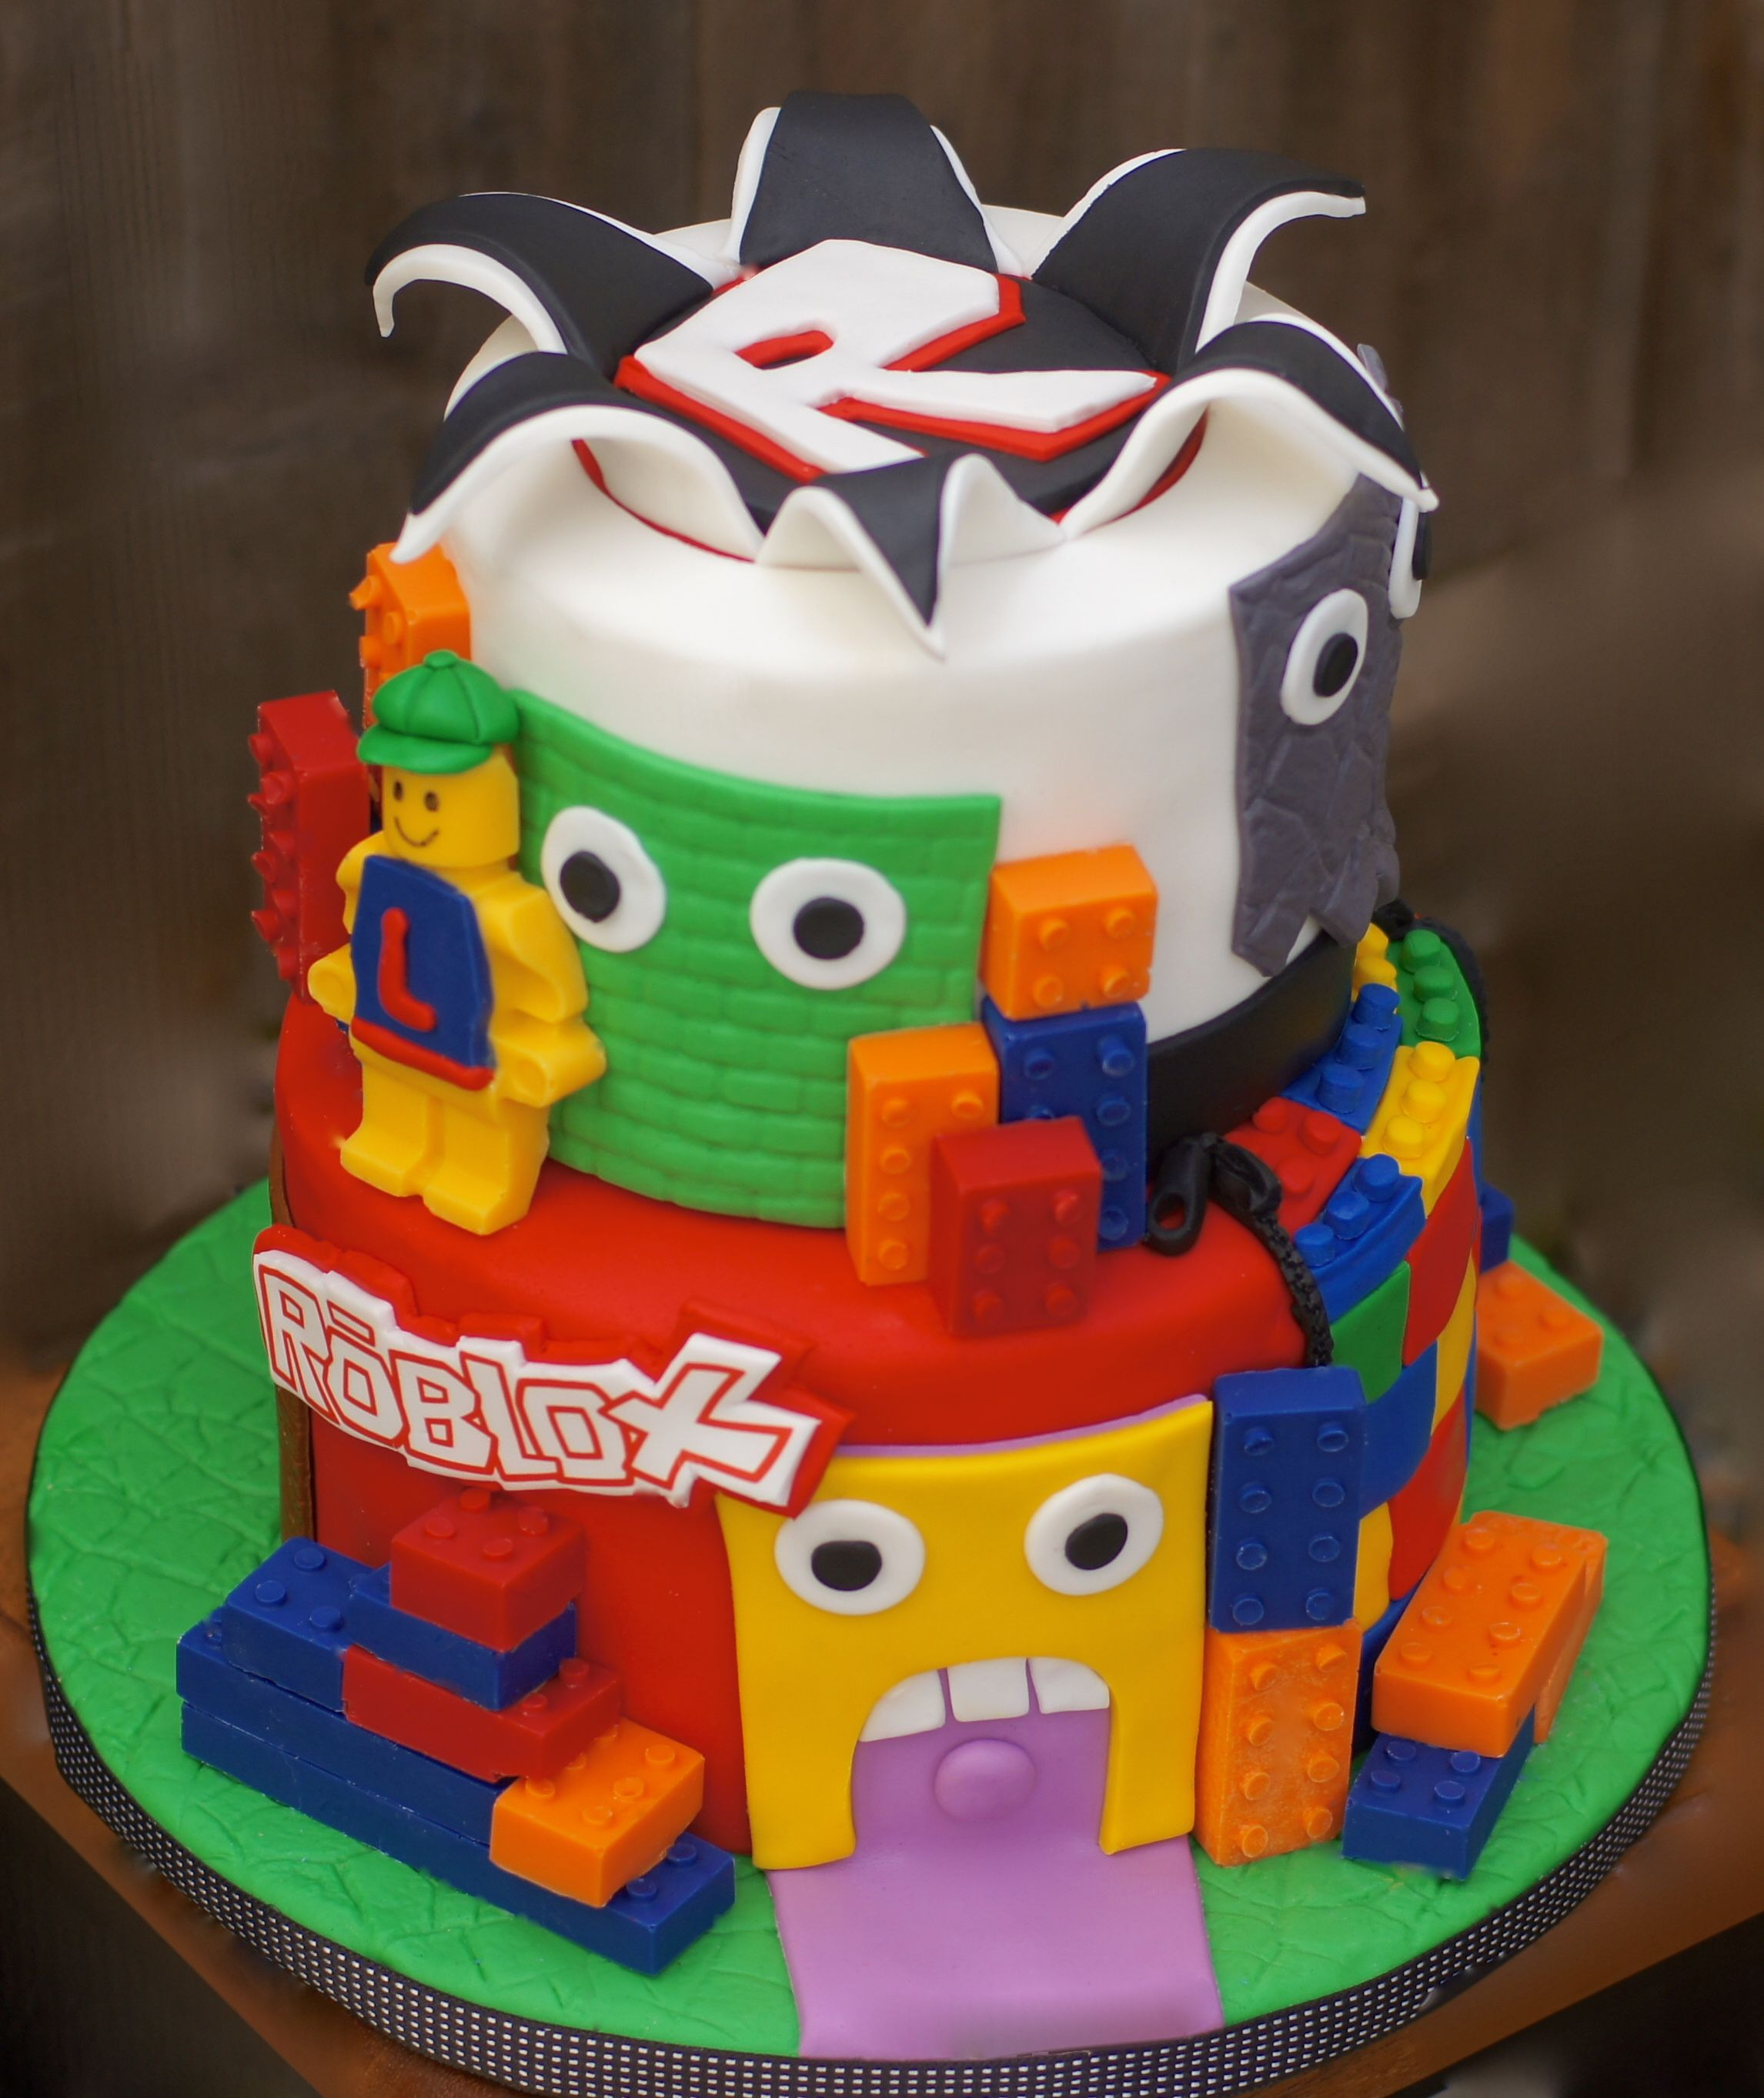 Roblox Cake Roblox With Images Roblox Birthday Cake Roblox